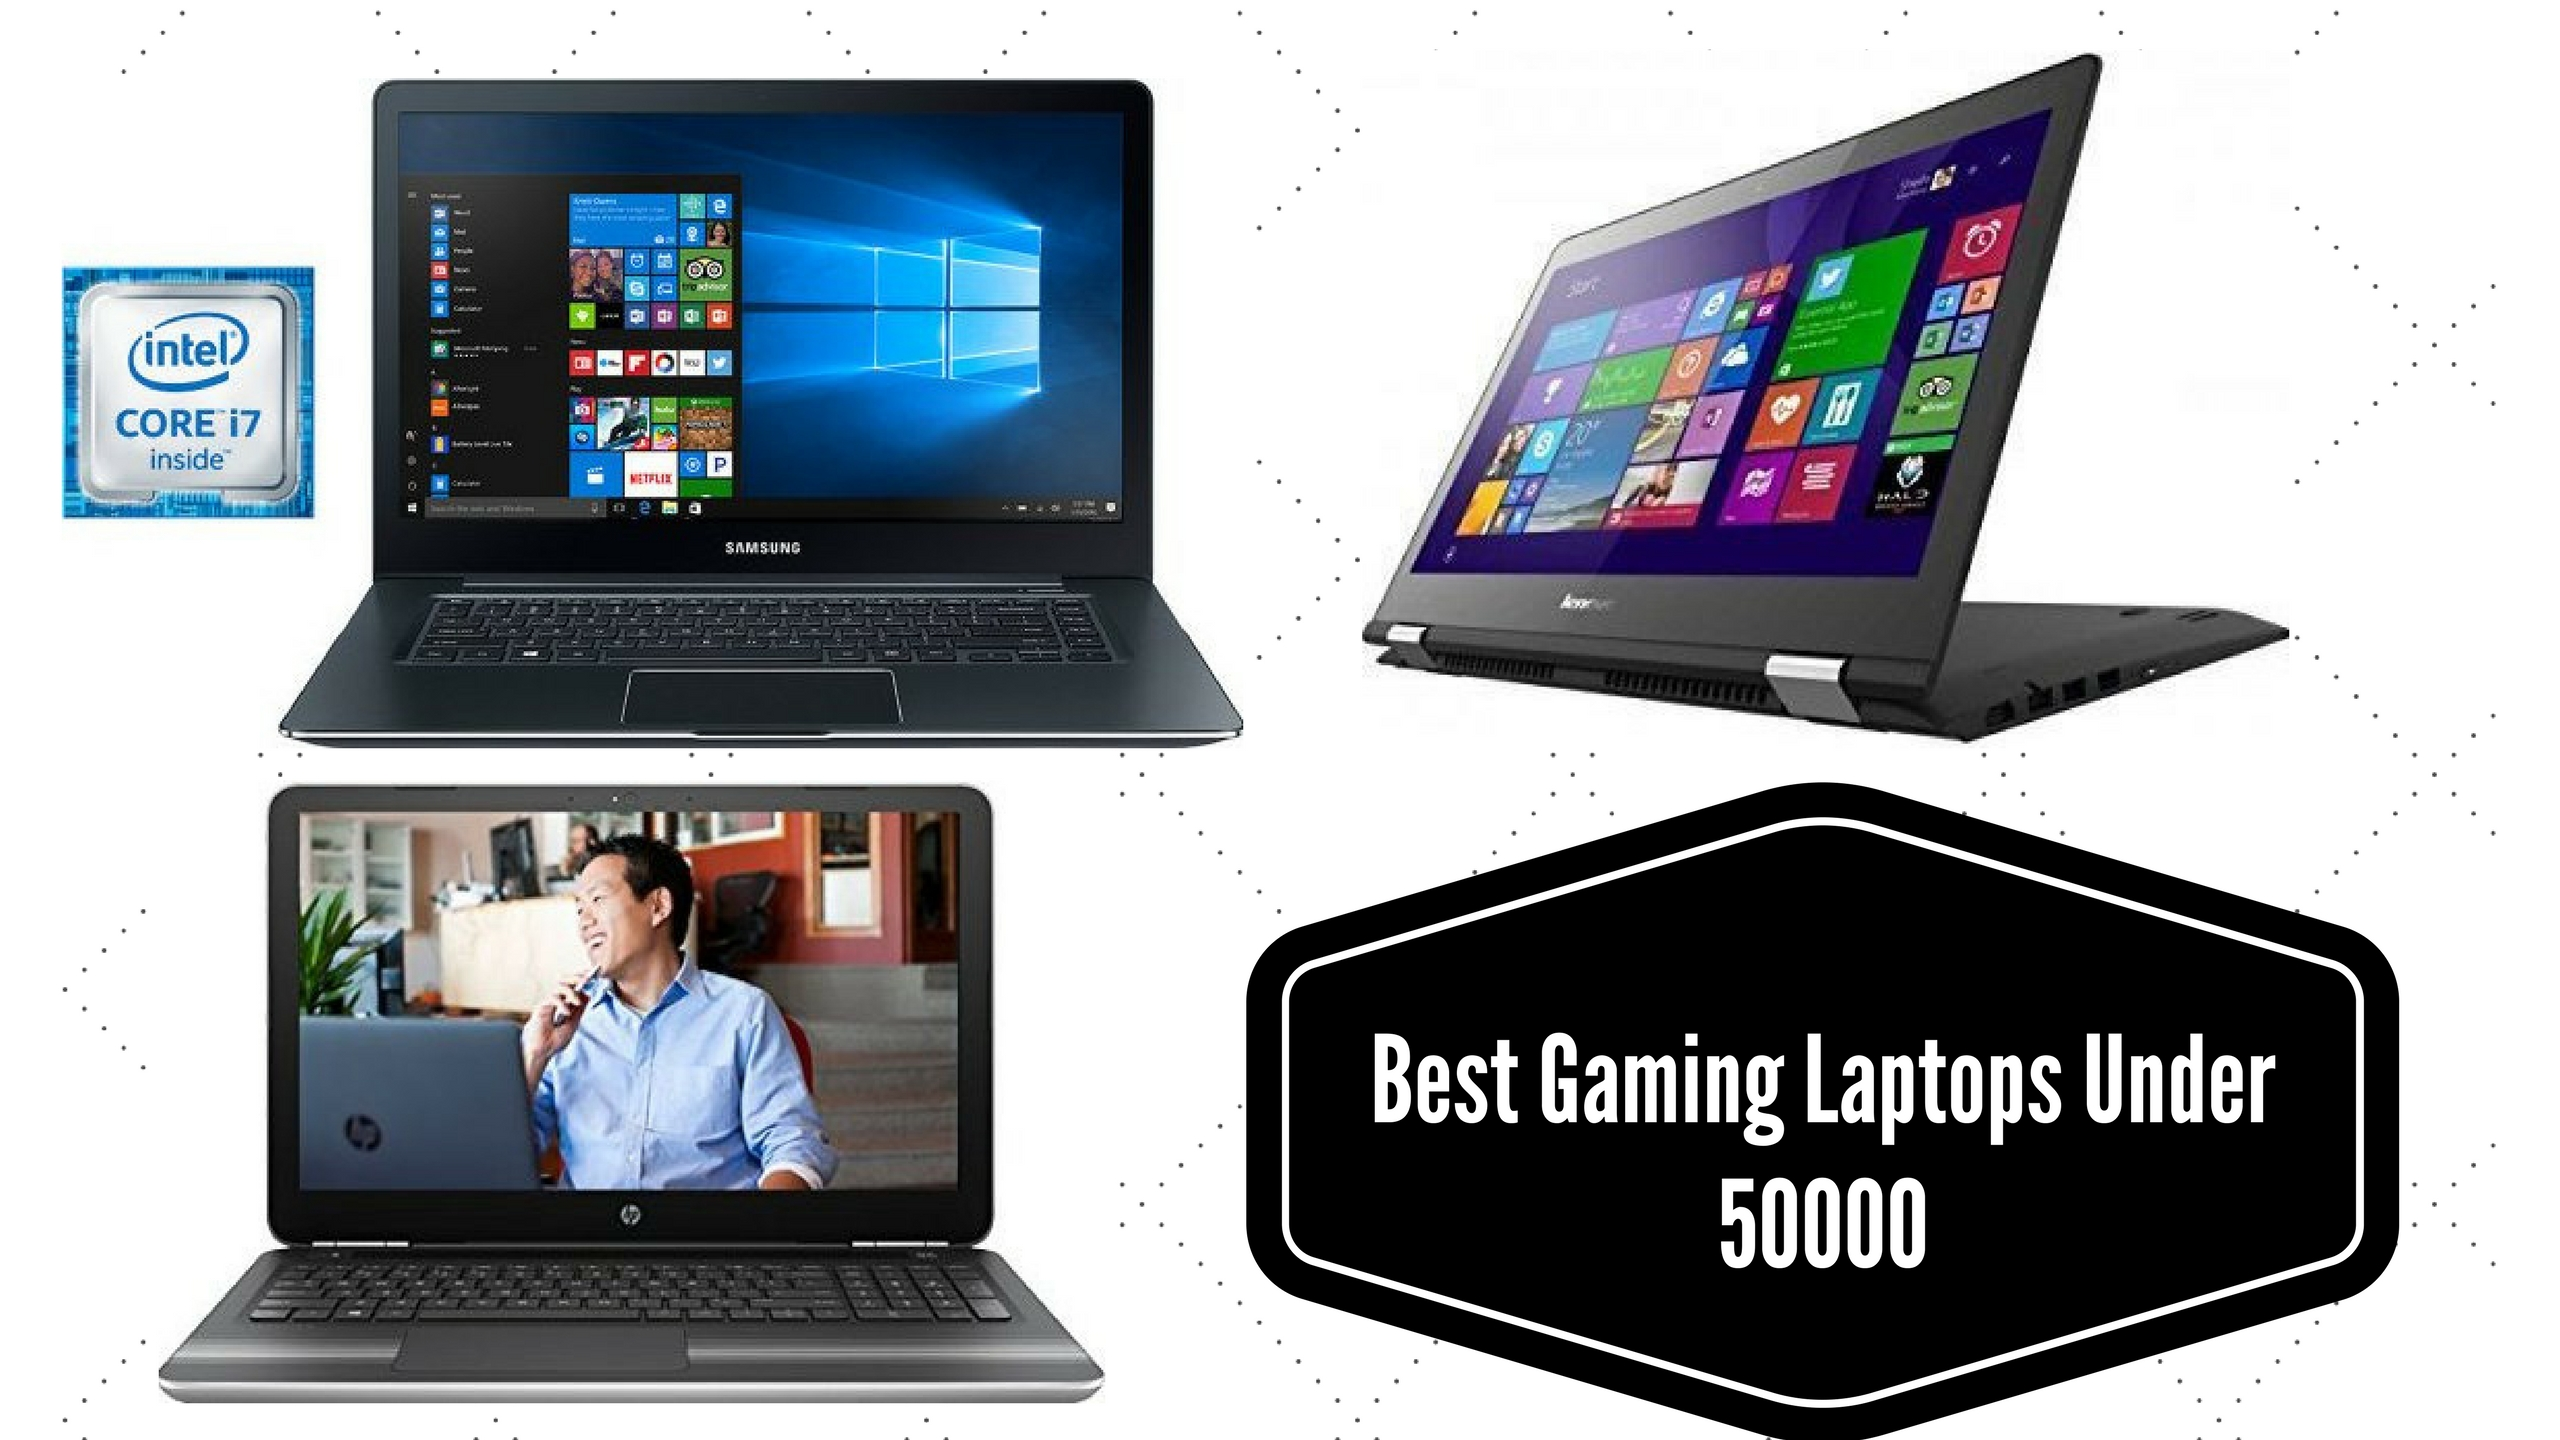 Top 10 Best Gaming Laptops Under 50000 In India | Reviews & Price List 2018